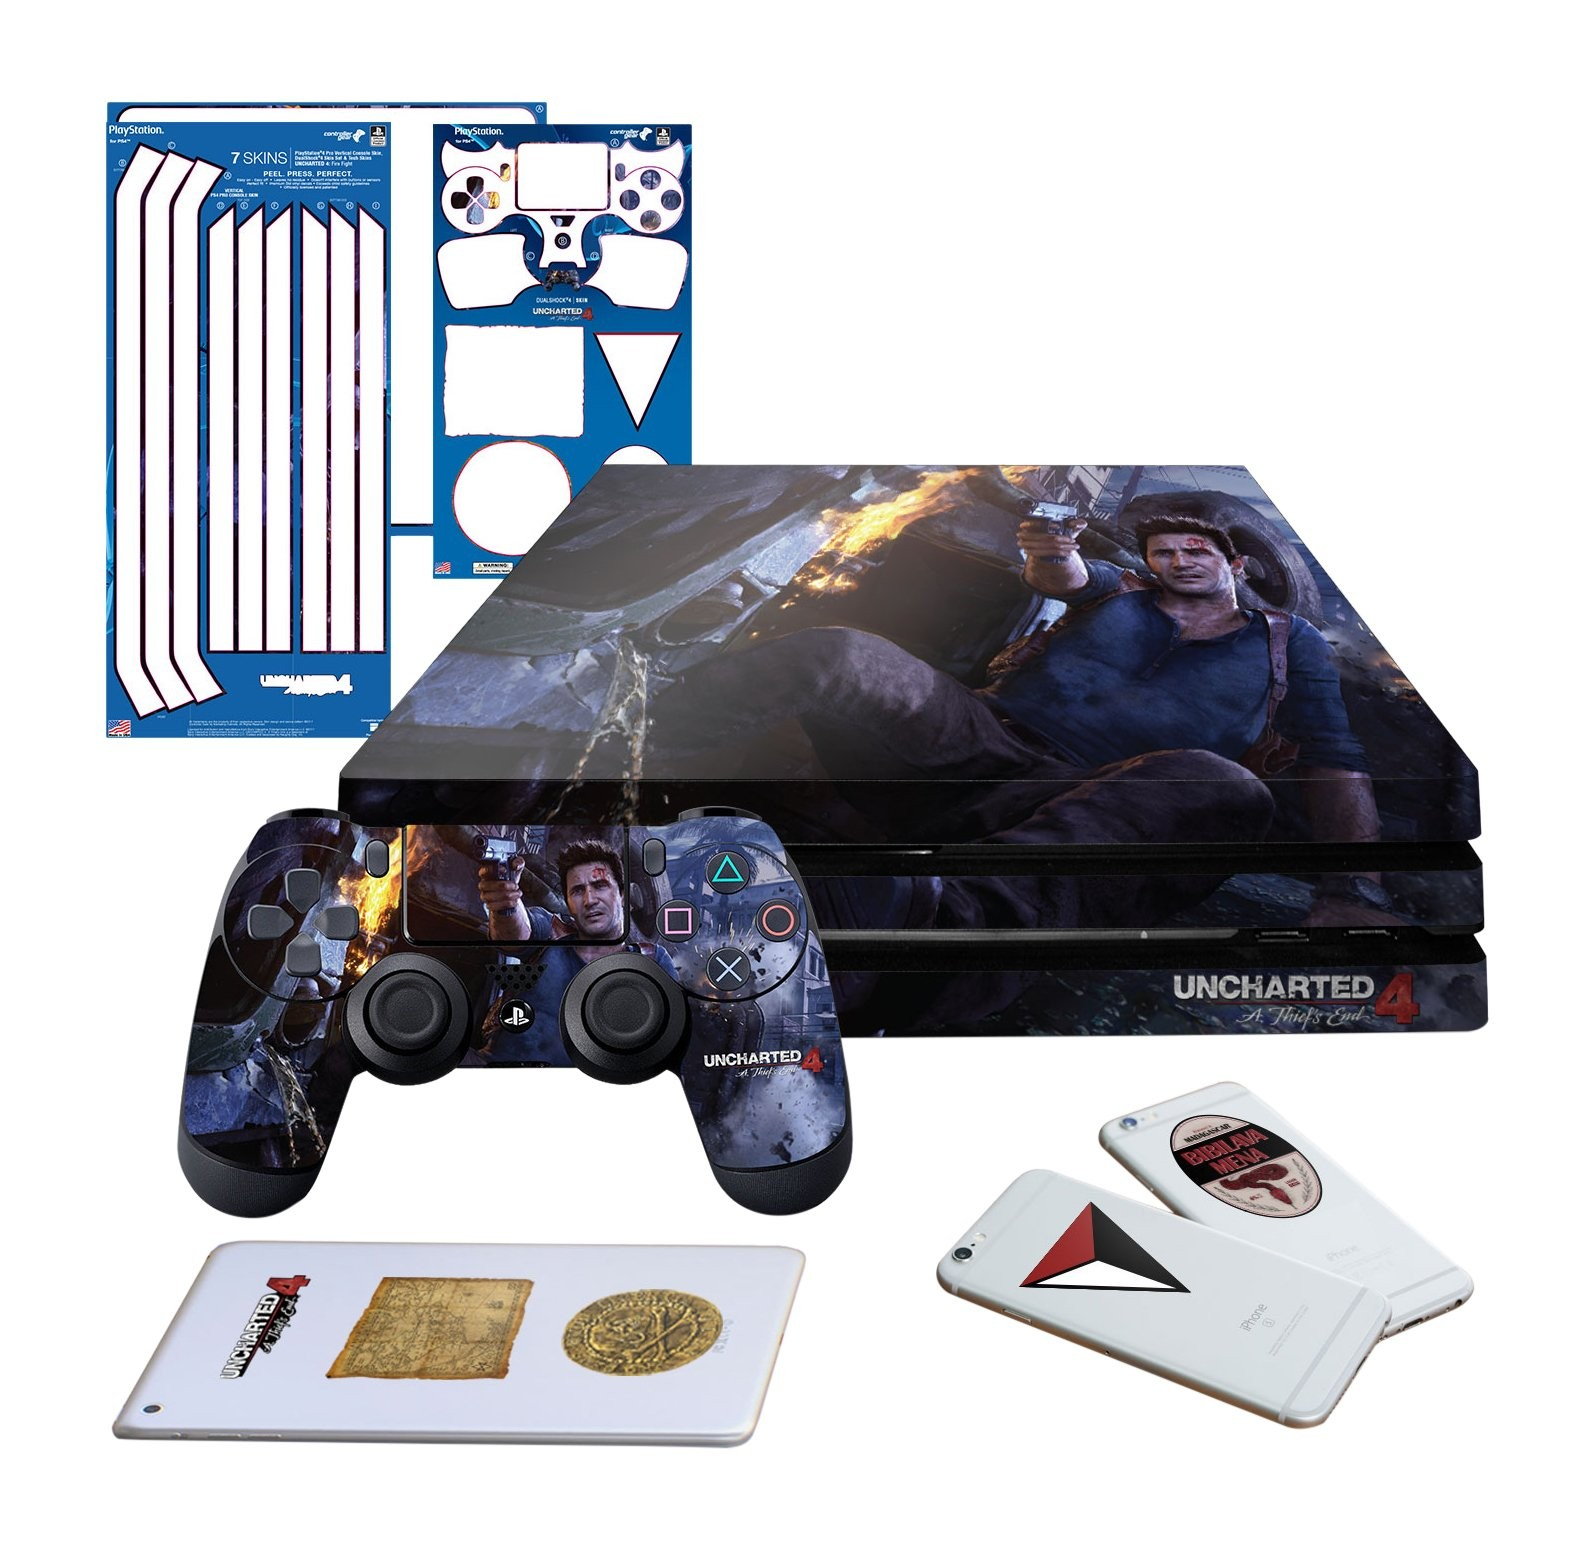 Uncharted 4 Fire Fight - PS4 PRO Horizontal Console and Controller Gaming Skin Pack - Officially Licensed by PlayStation - Controller Gear